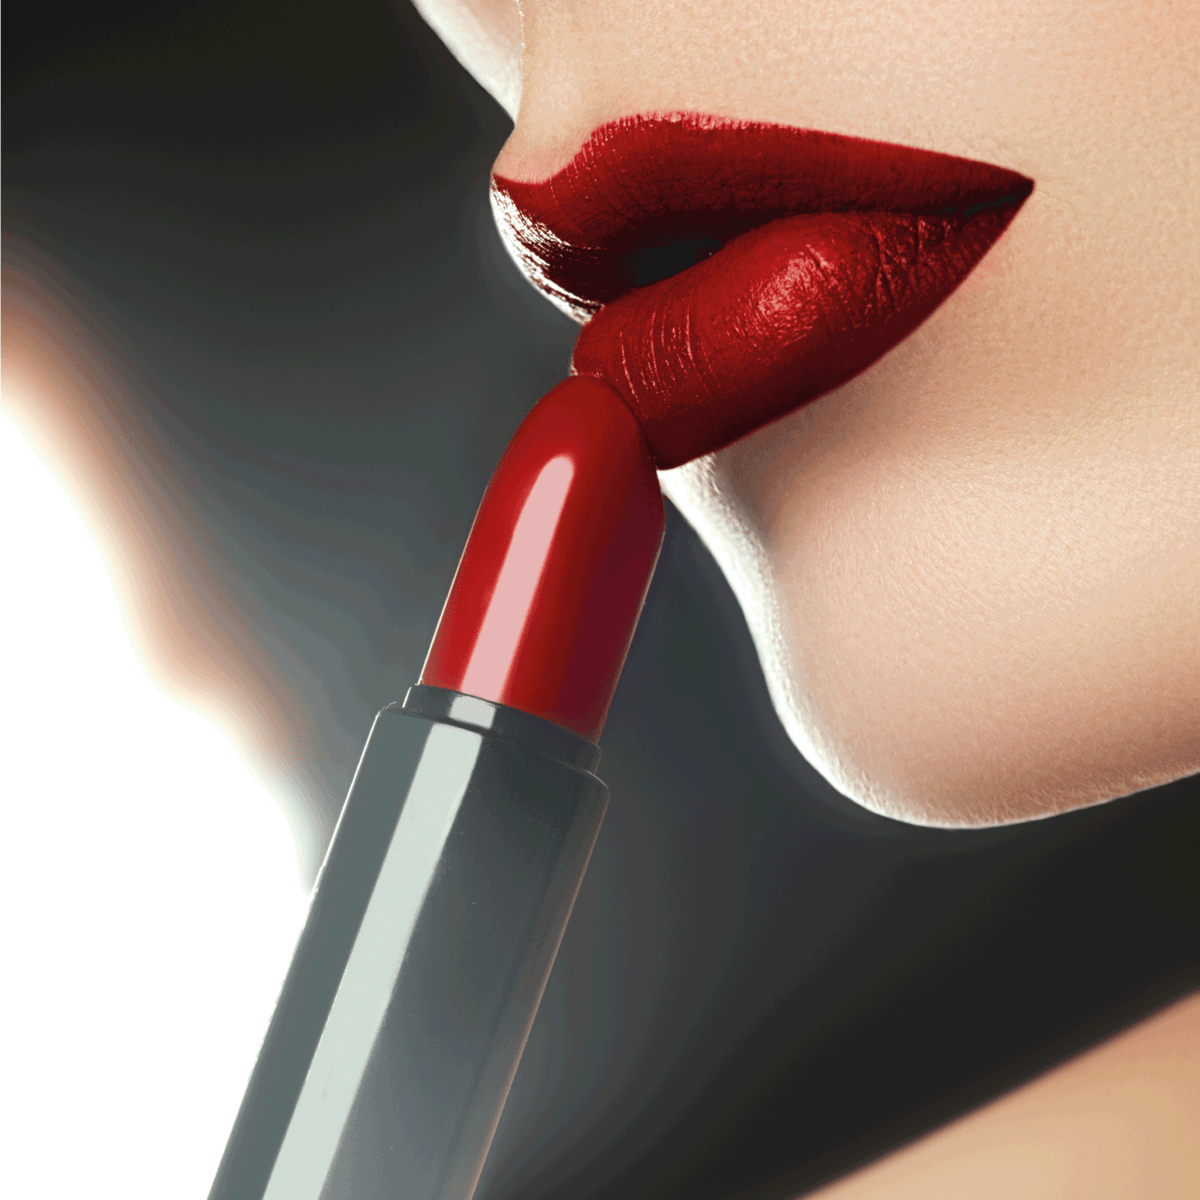 Cosmetics, makeup and trends. Bright lip gloss and lipstick on lips.